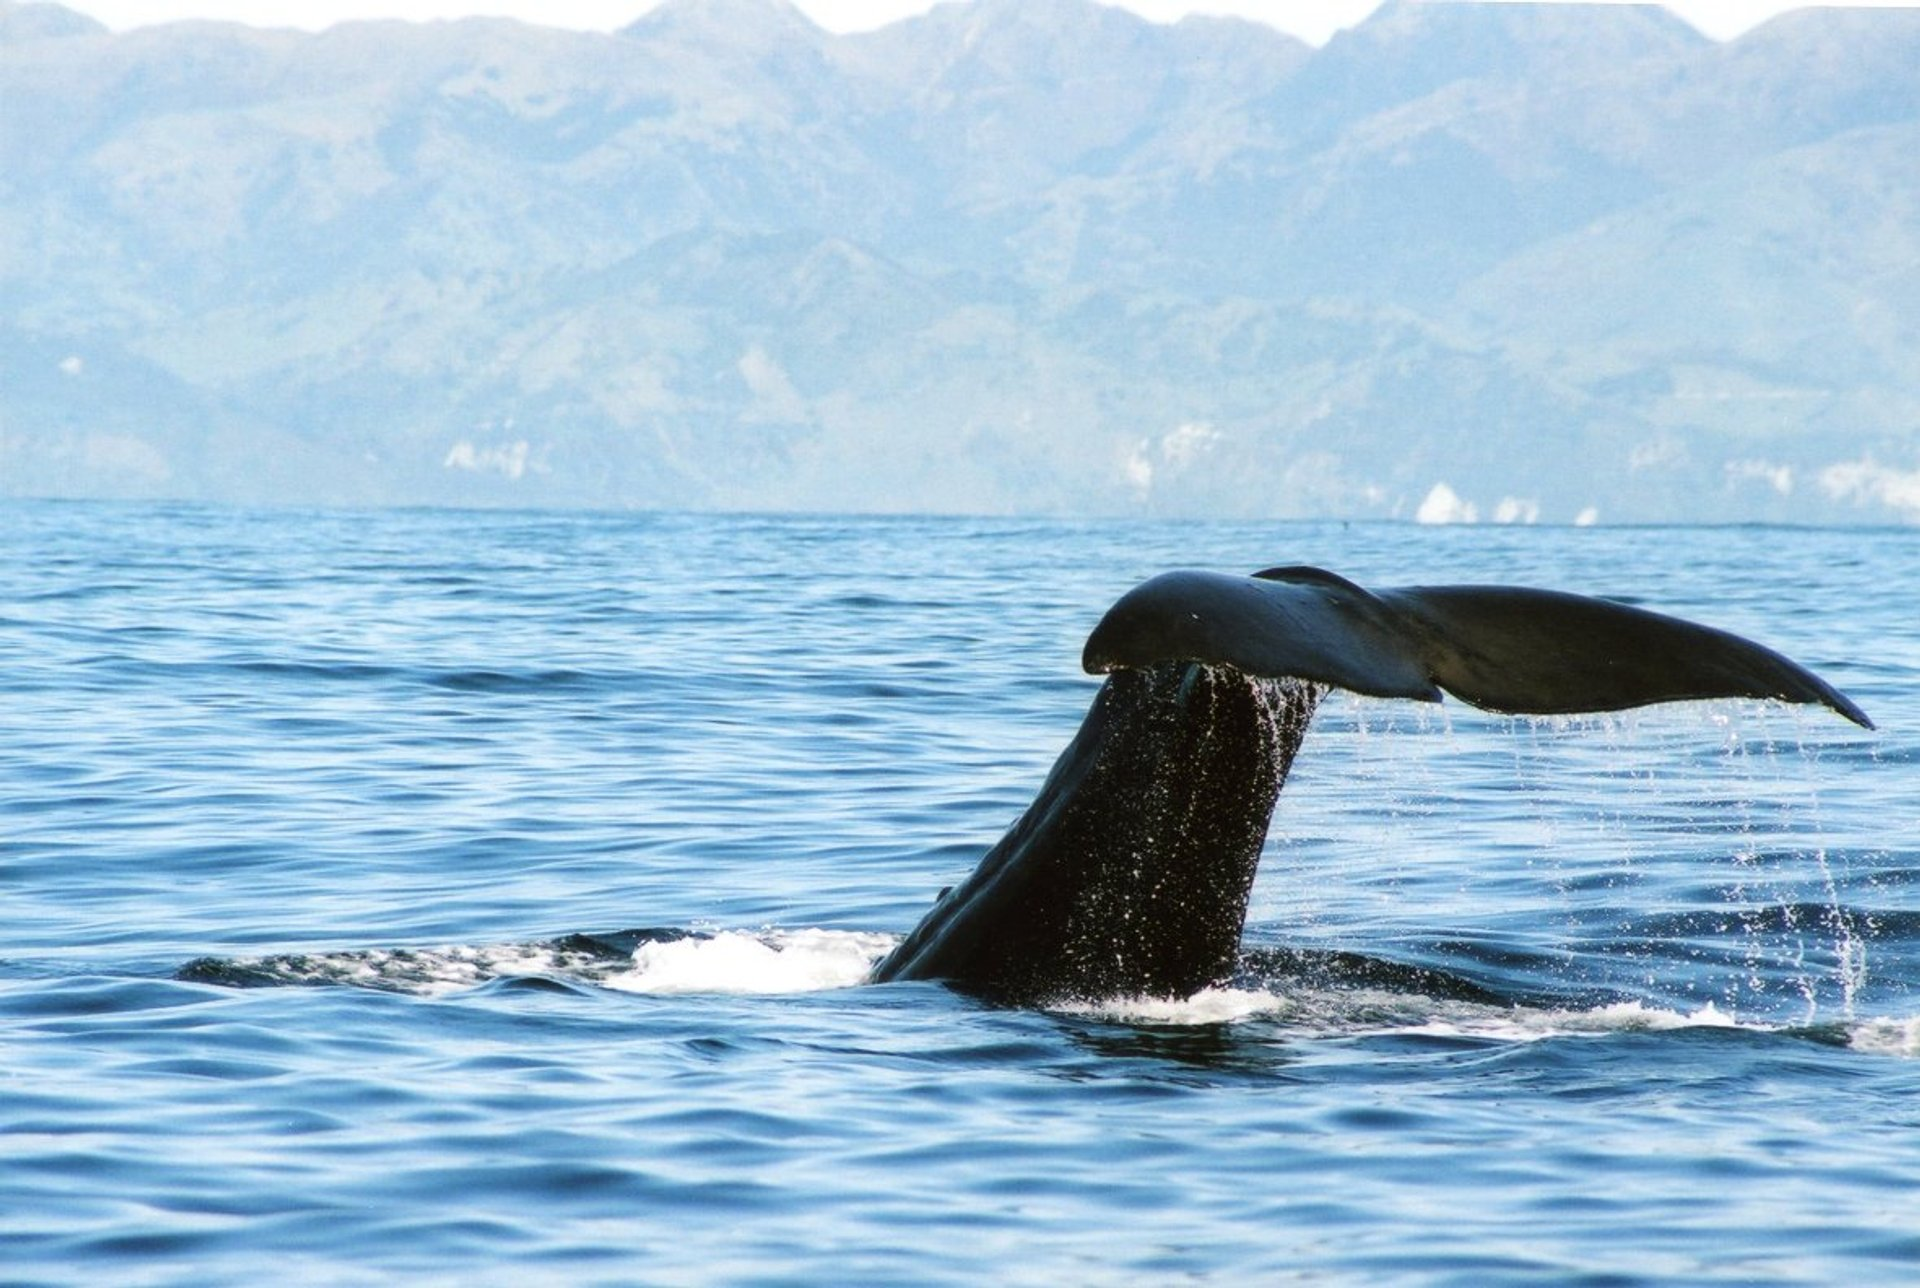 Whale Watching in New Zealand 2020 - Best Time